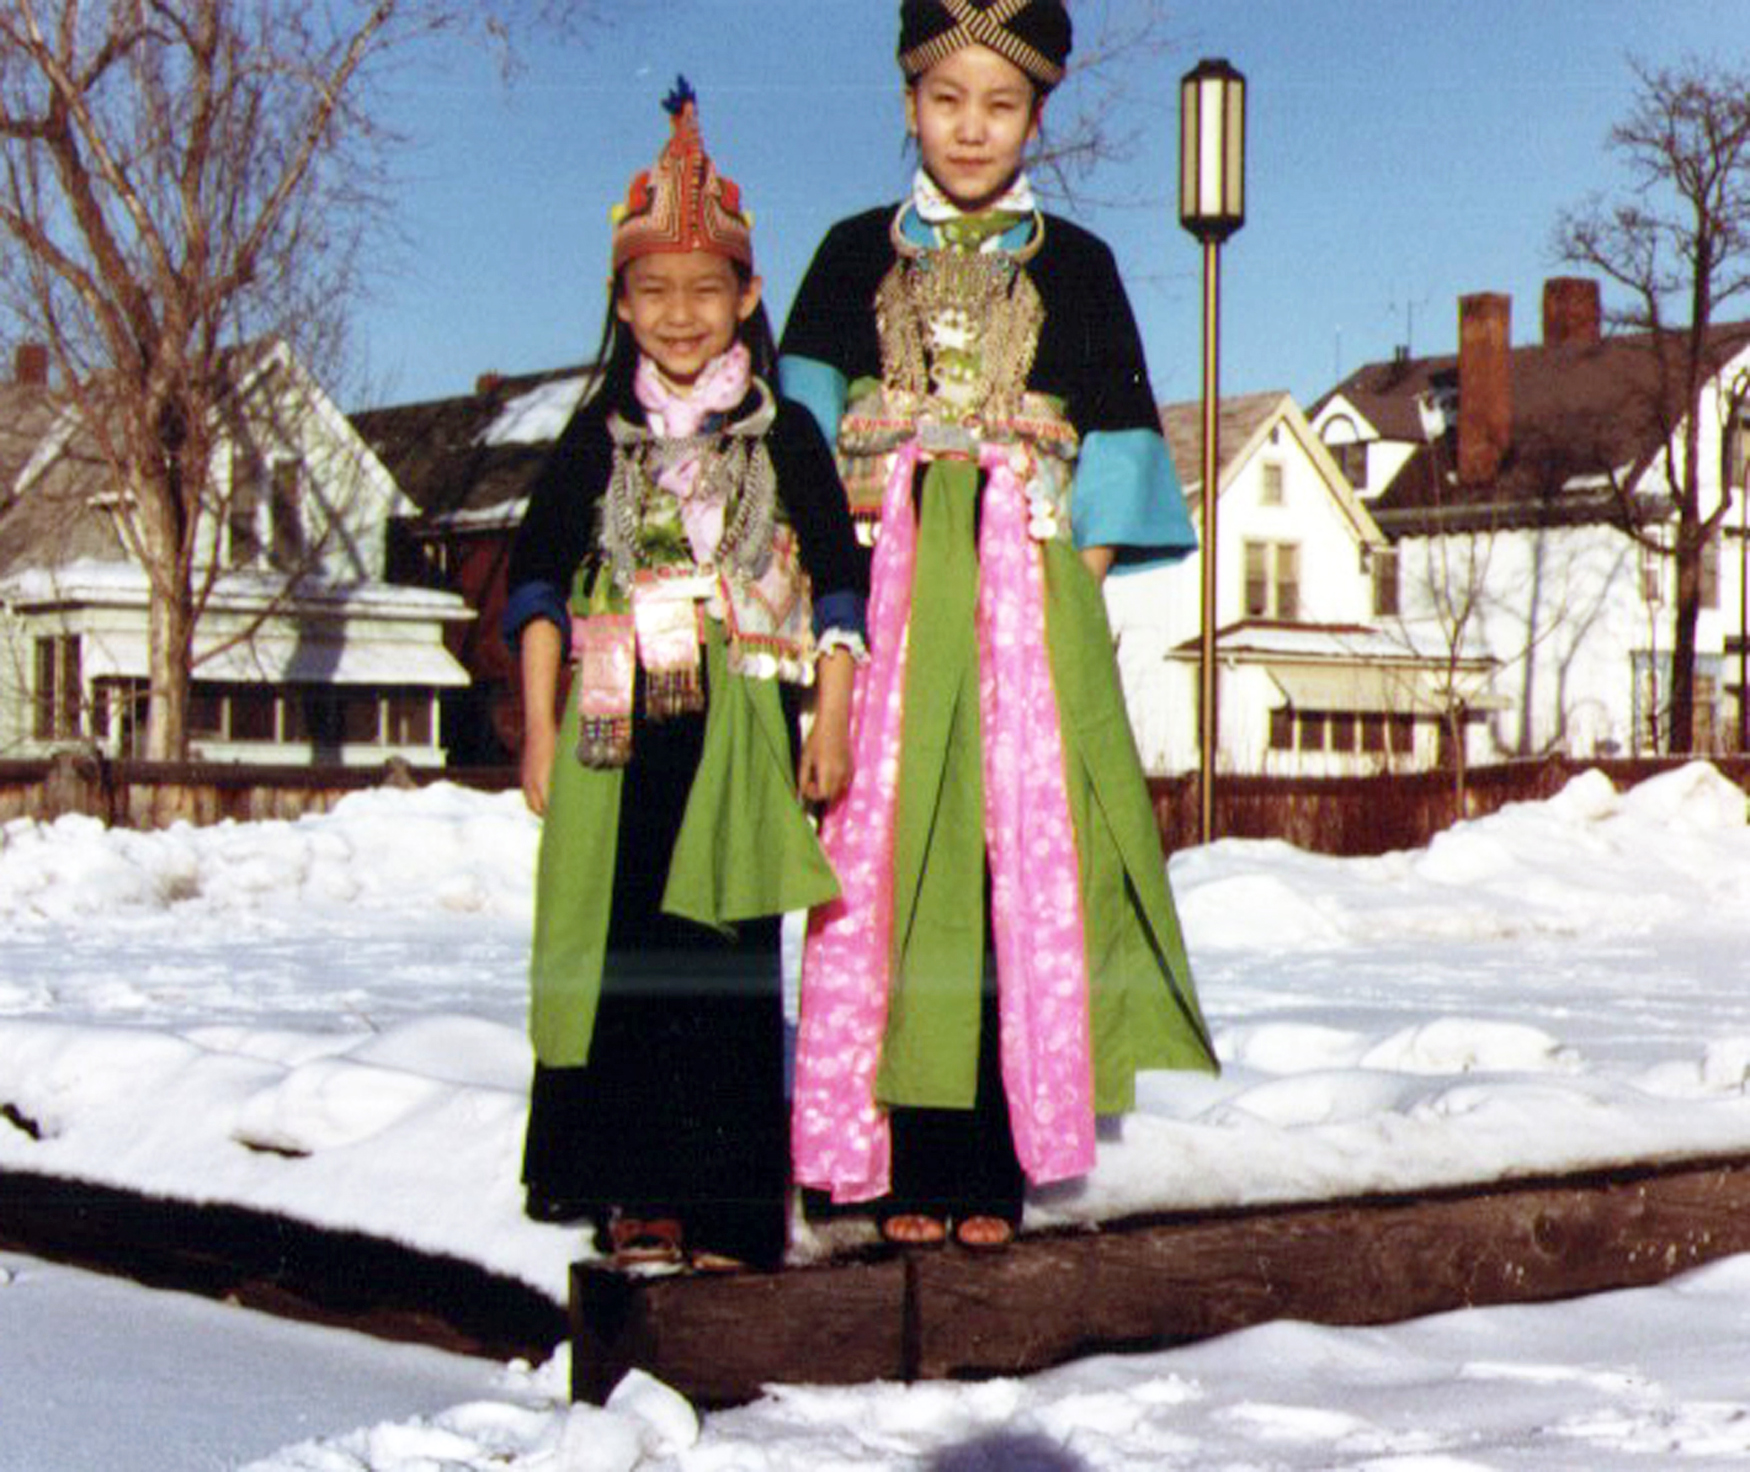 """My sister and me back in the '80s (I am the little one),"" Bidania tells me. ""This was taken outside our house in St. Paul on my family's way to the Hmong New Year celebration. """